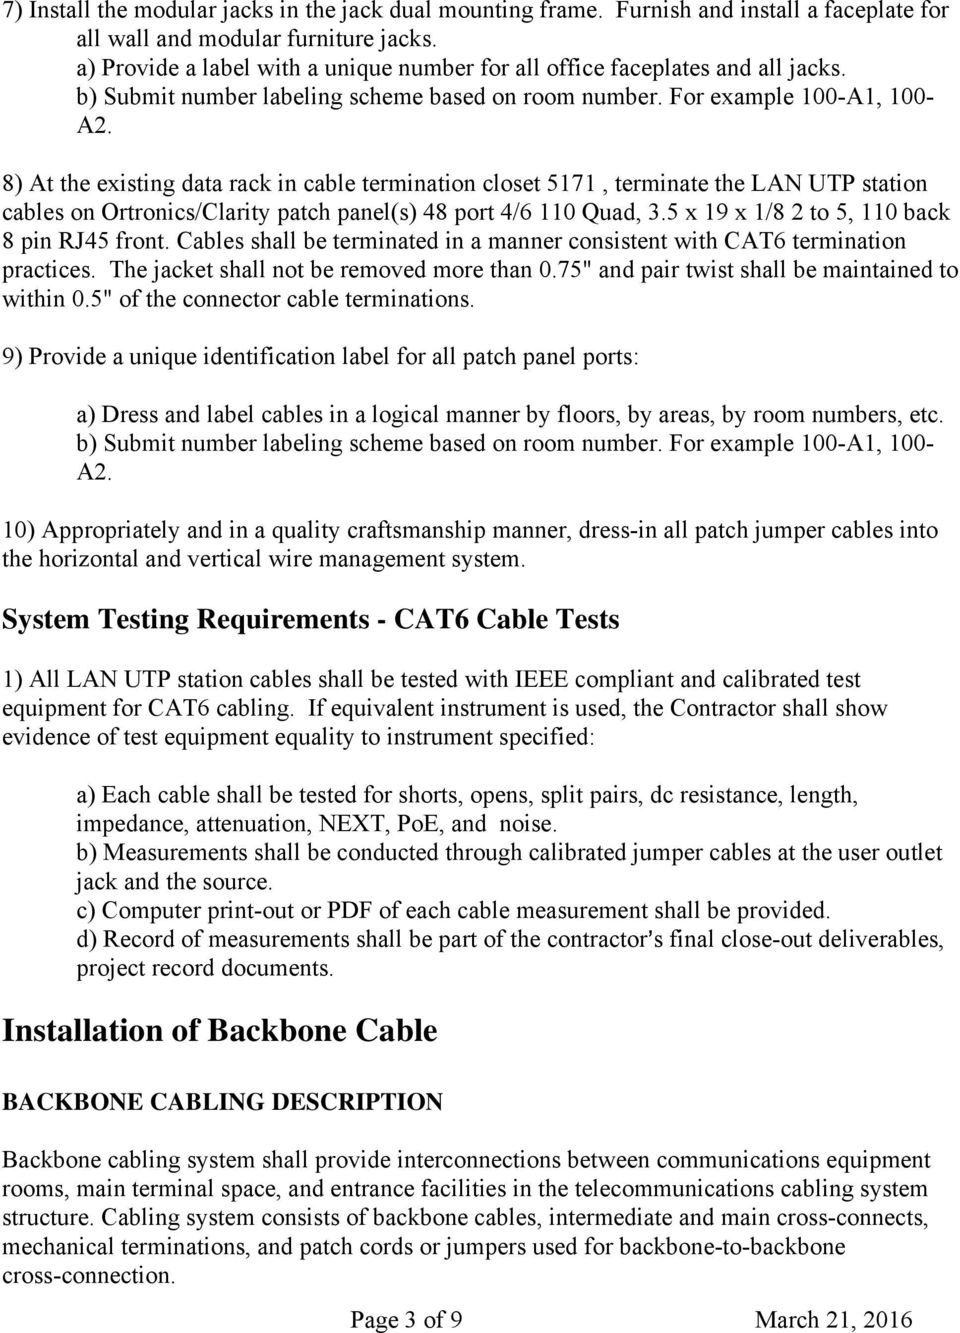 Cable Installation Project Pdf Split Ether Together With Patch Panel Wiring Also Manual Sobre 8 At The Existing Data Rack In Termination Closet 5171 Terminate Lan